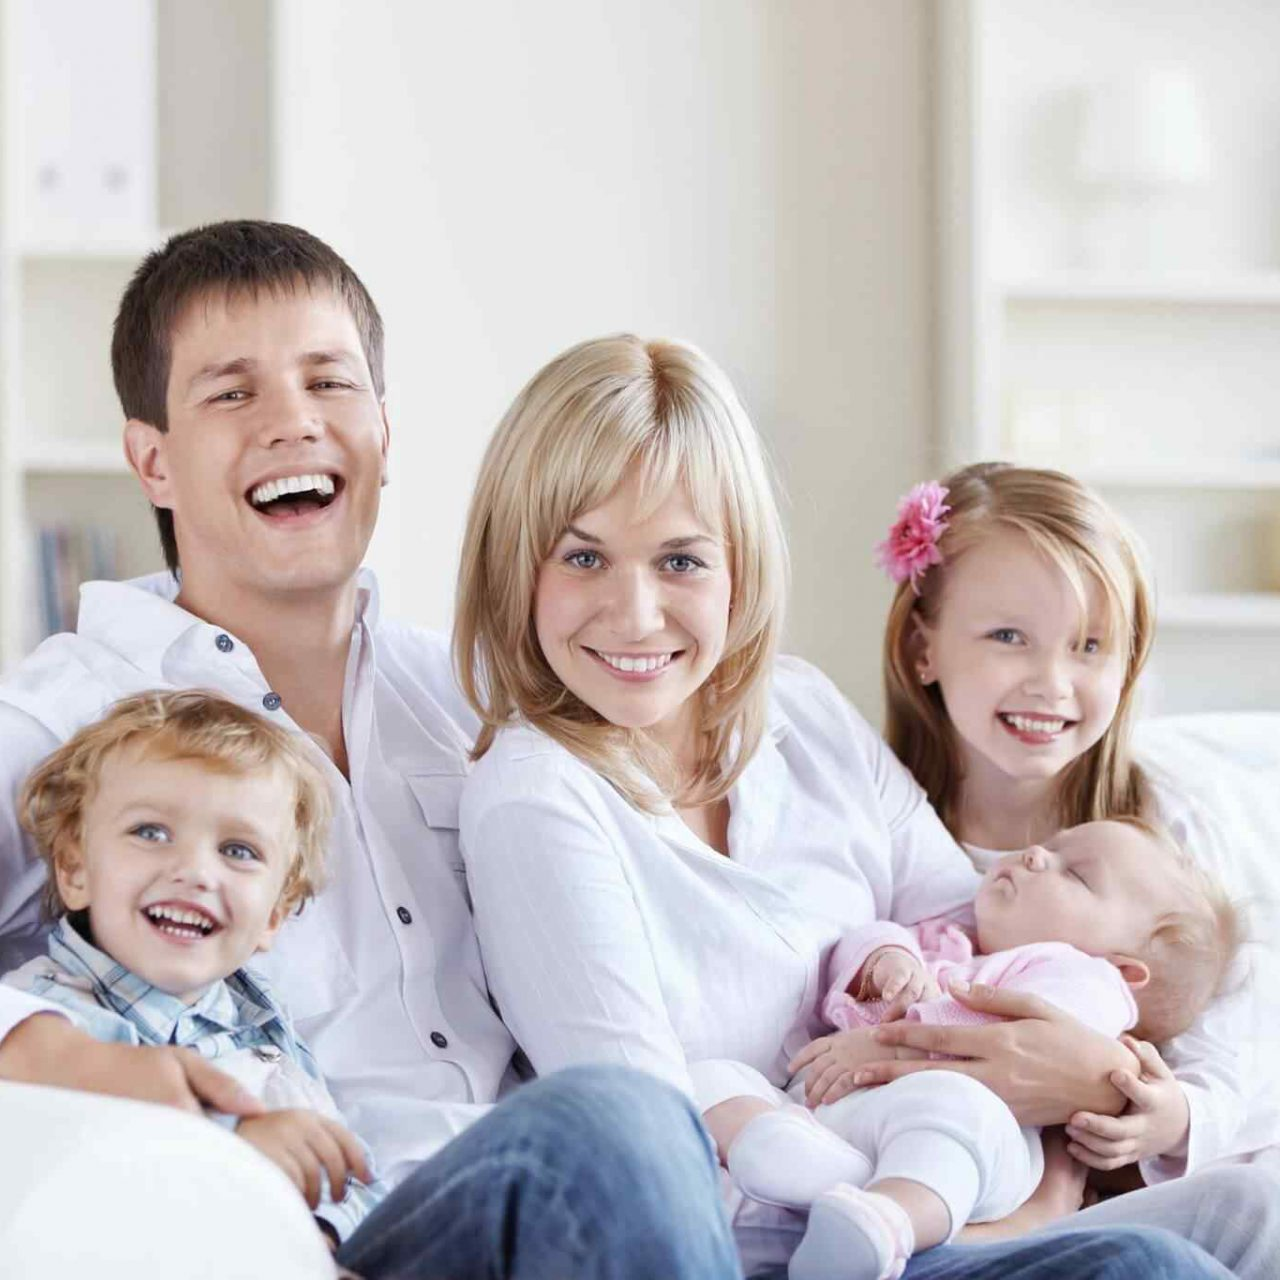 A happy family with three children at home